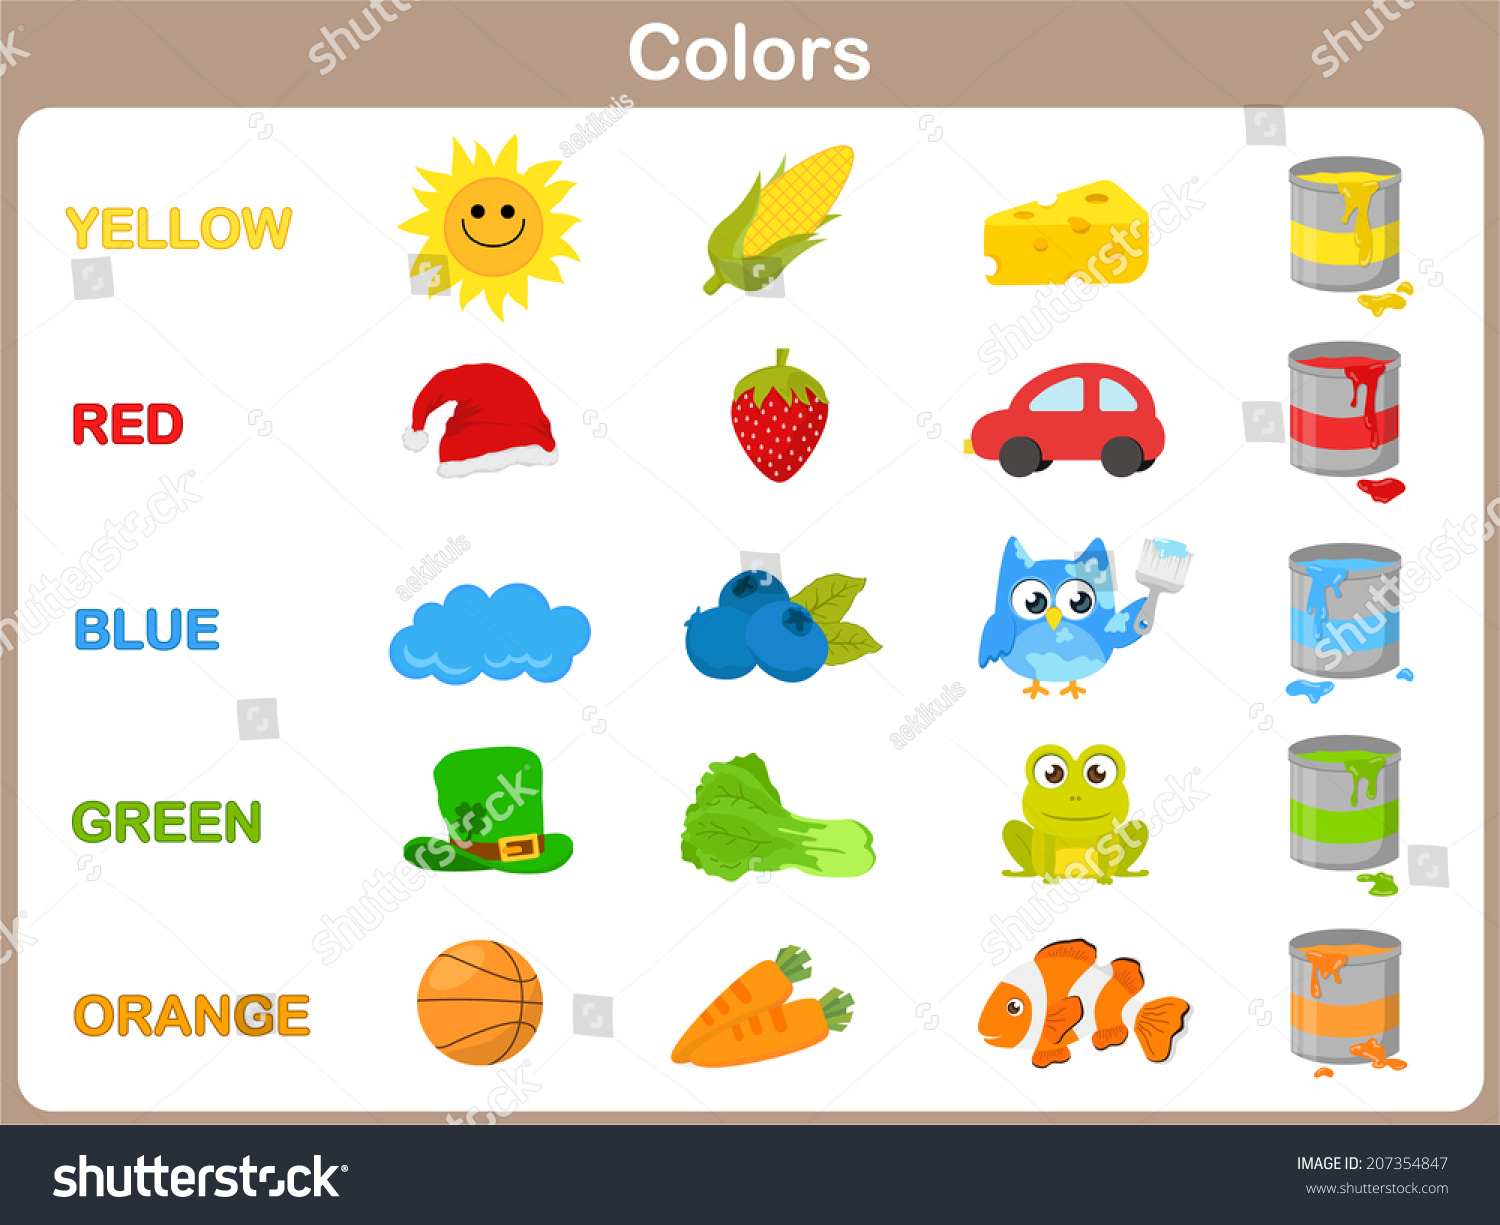 Learning Object Colors Kids Stock Vector (Royalty Free) 207354847